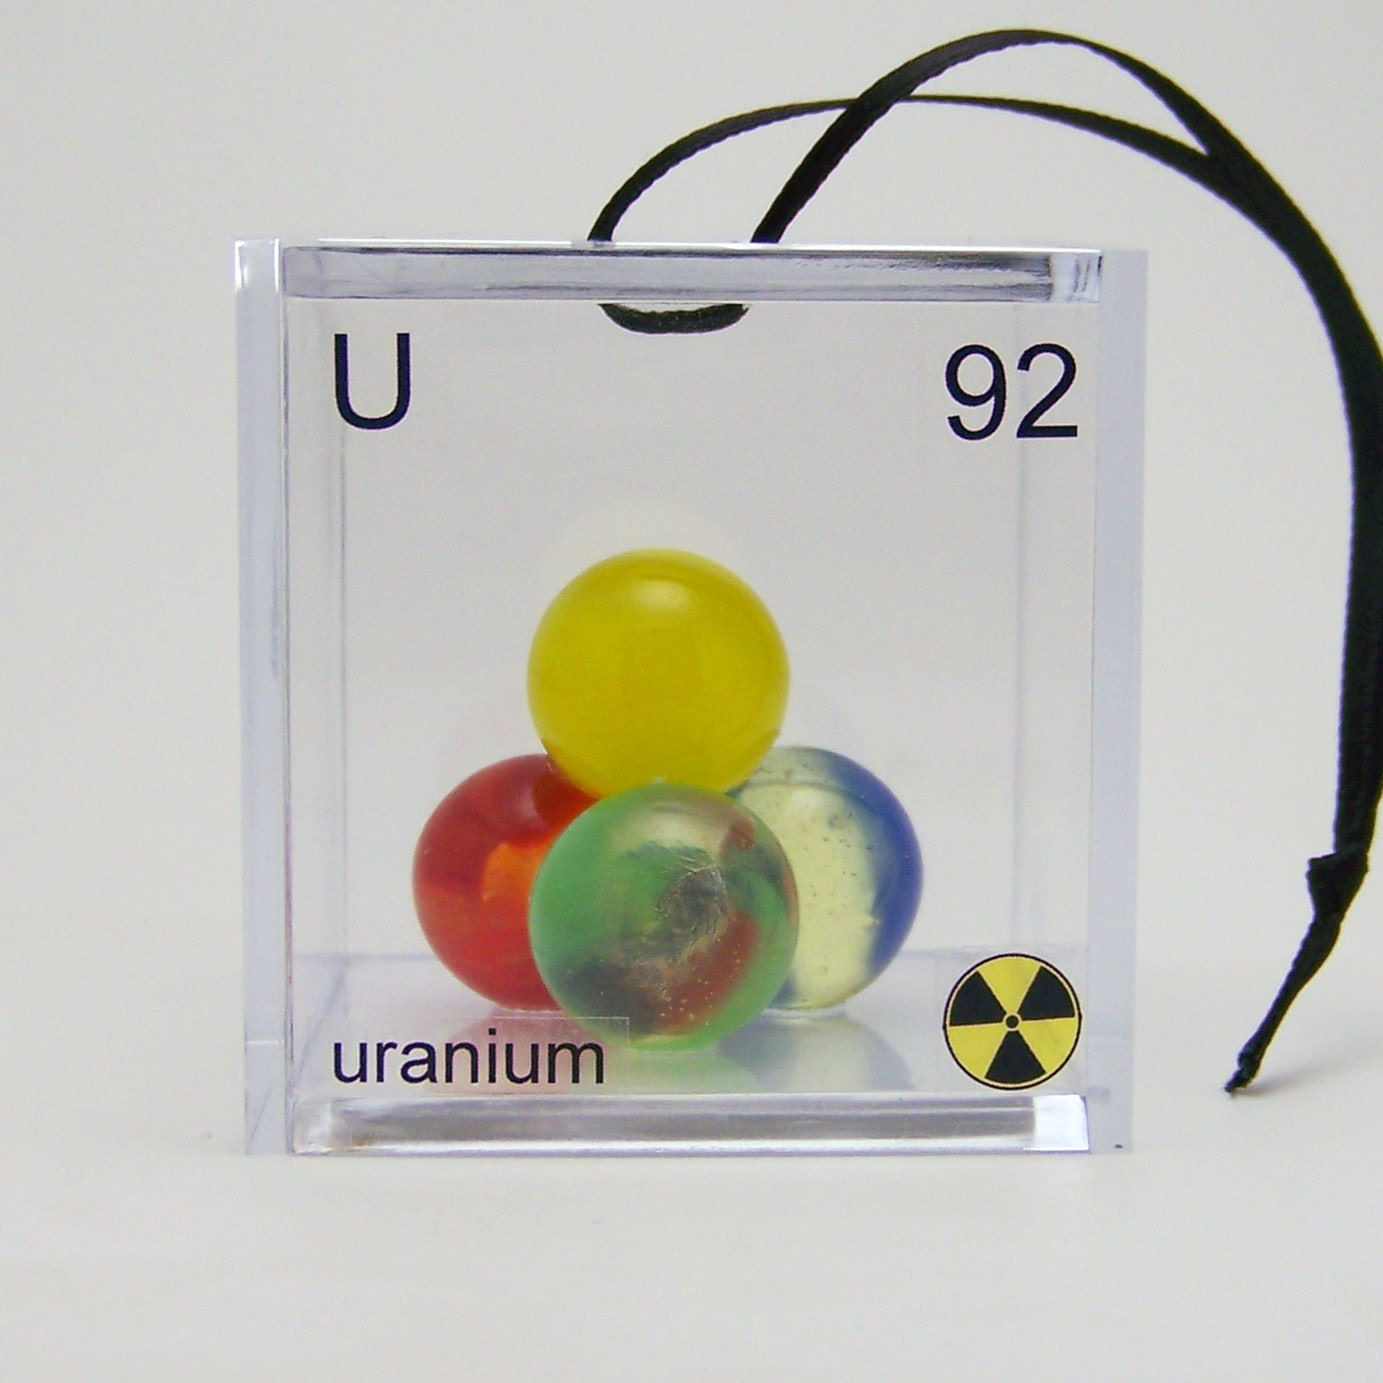 Uranium - Periodic Table of Elements Cube Ornament - ElementsCubed